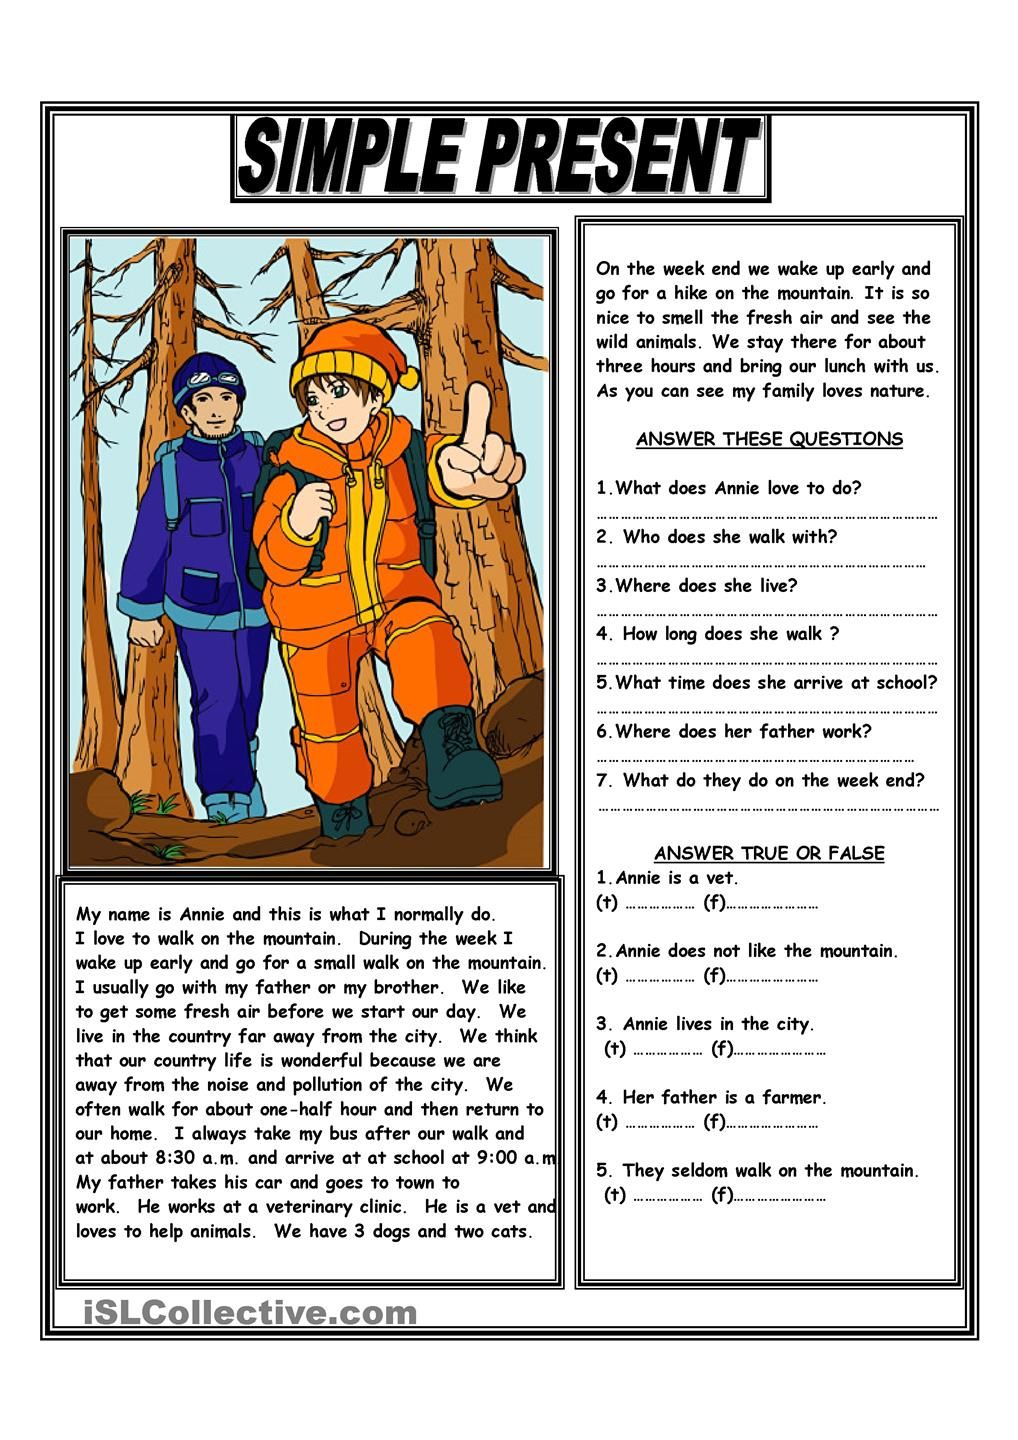 Simple Present Reading Comprehension Text Reading Comprehension Texts Reading Comprehension Esl Reading Comprehension Reading activitiespresent simple and